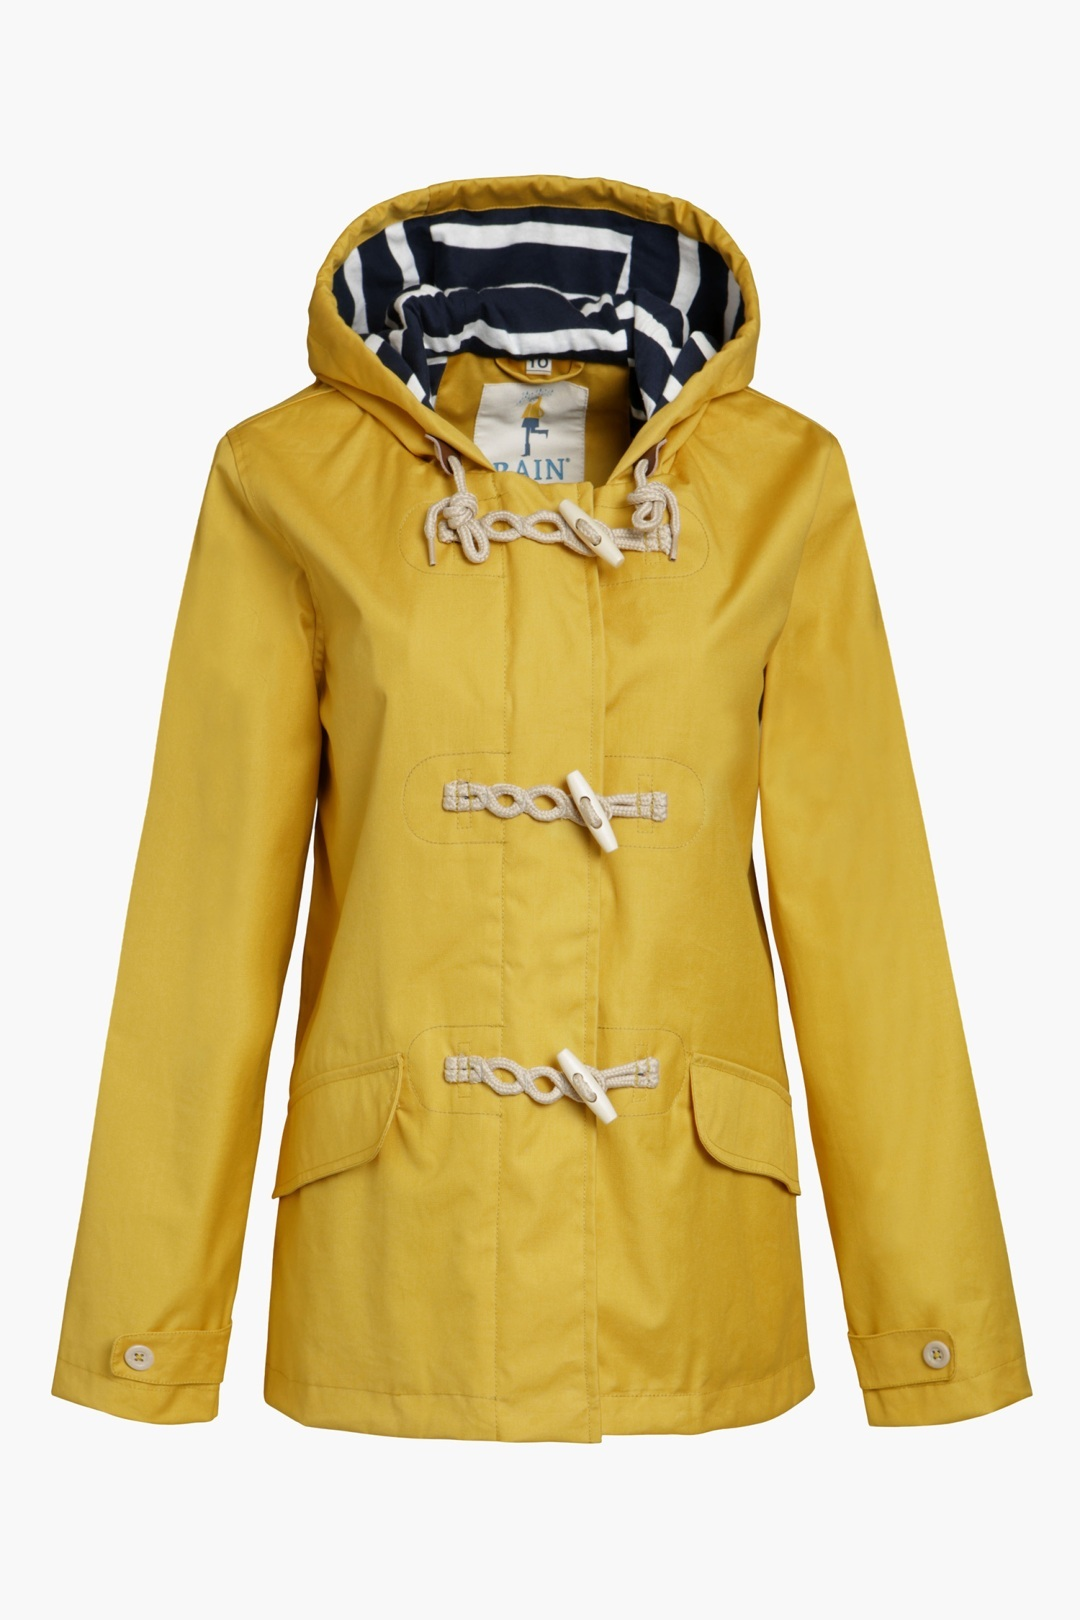 https://www.seasaltcornwall.co.uk/waterproof-outdoor-technical-jackets/rain_coats/seafolly-short-lightweight-traditional-raincoat_mustard.htm